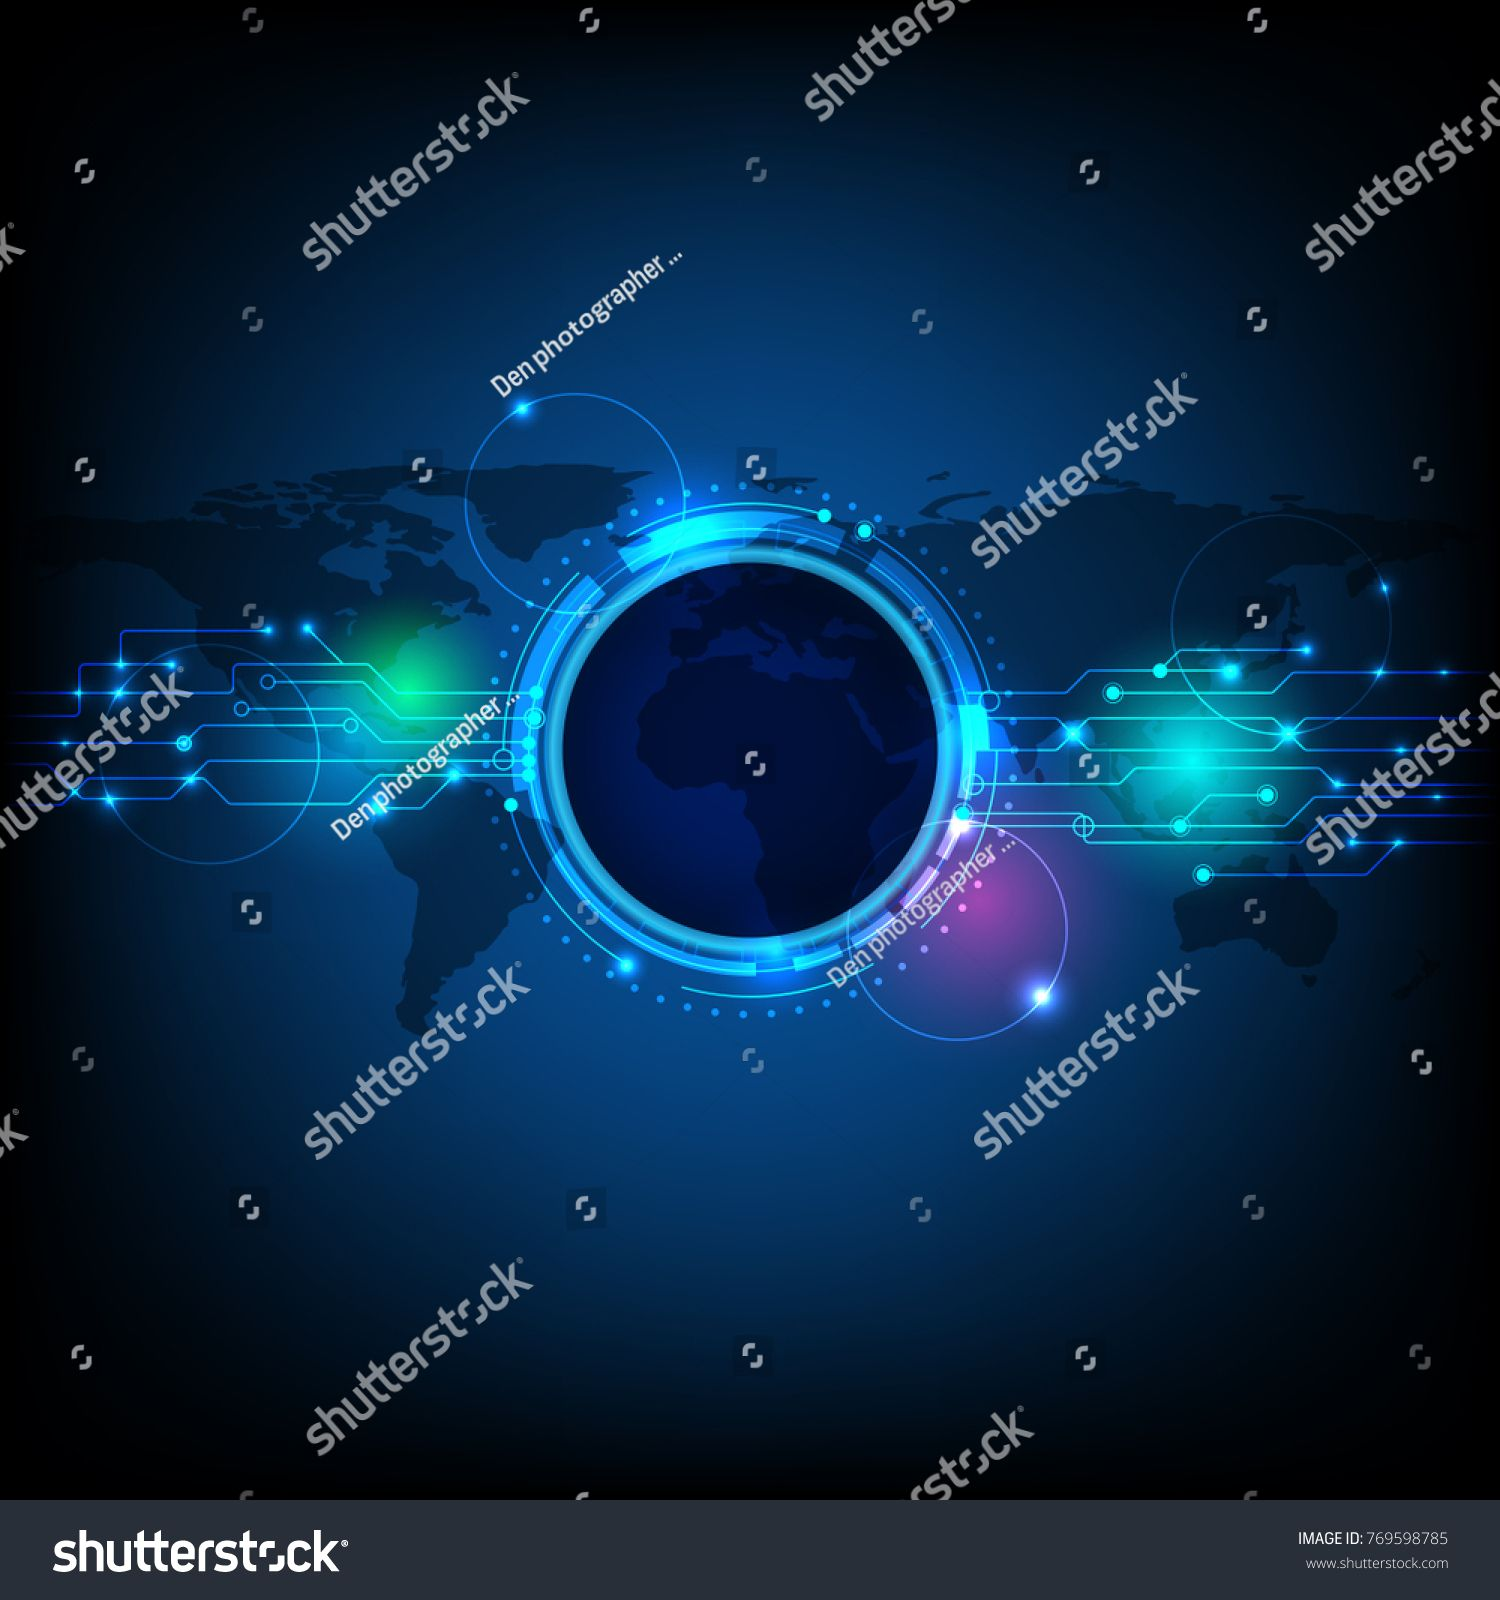 Abstract Futuristic Eyeball On Circuit Board Hi Tech Computer Technology With World Map And Blue Color Back In 2020 Computer Technology Vector Illustration Vector Art